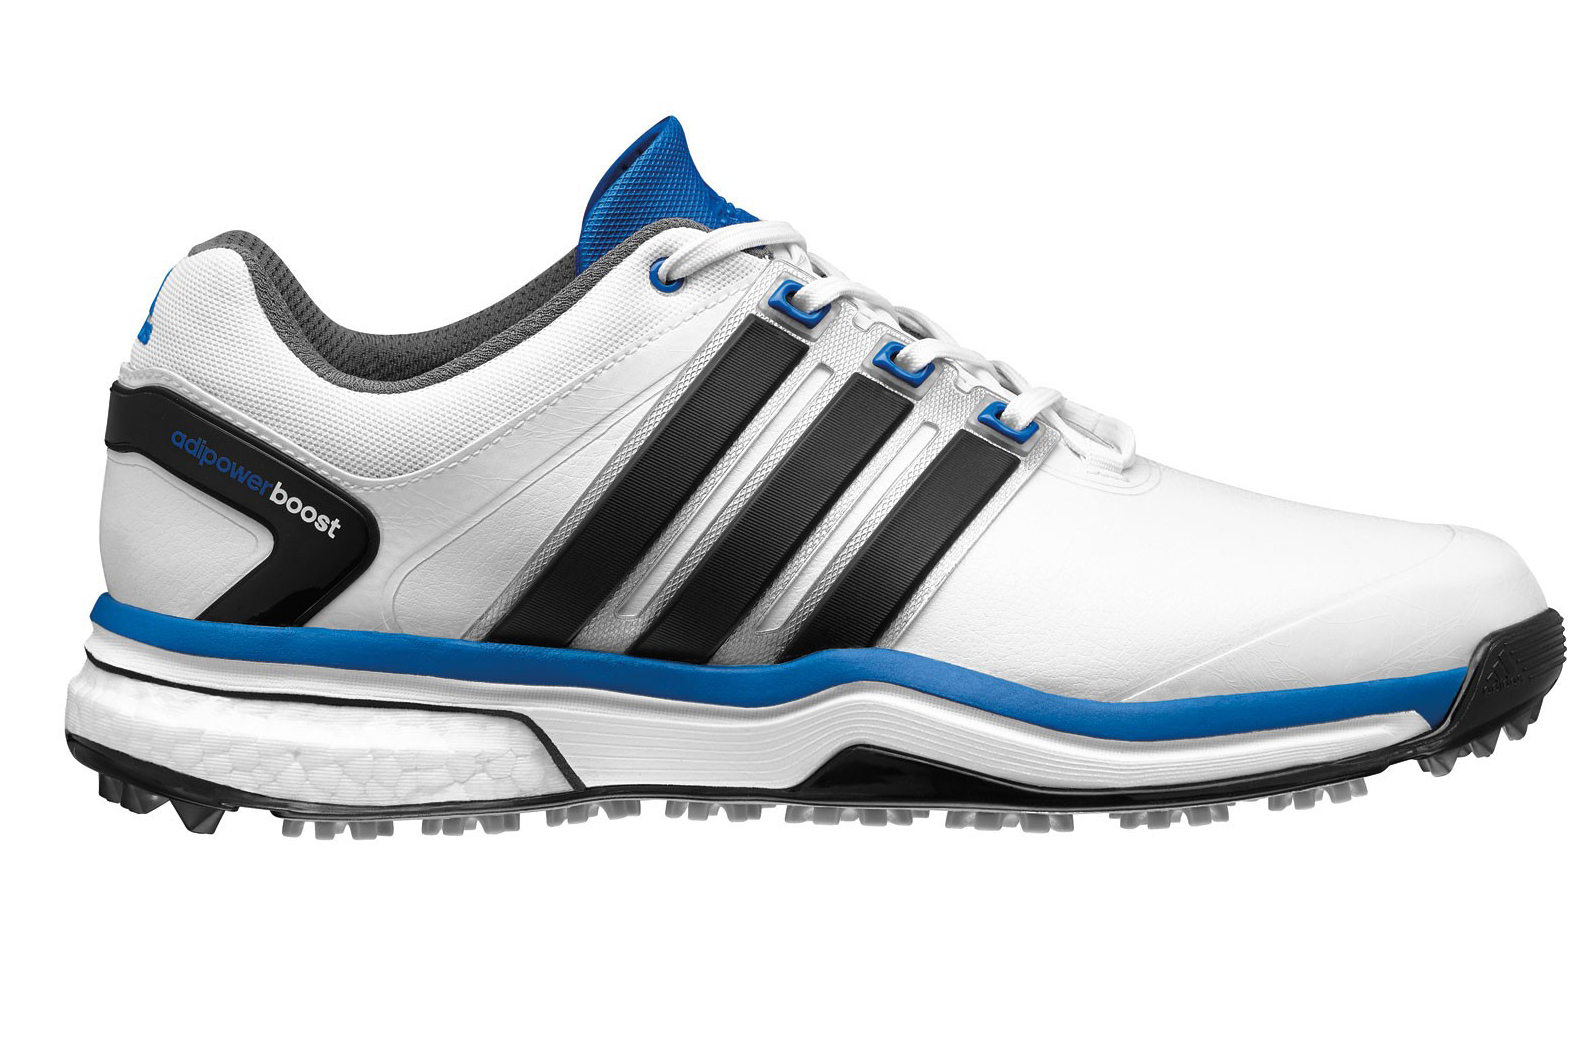 adipower boost golf shoe review | GolfMagic